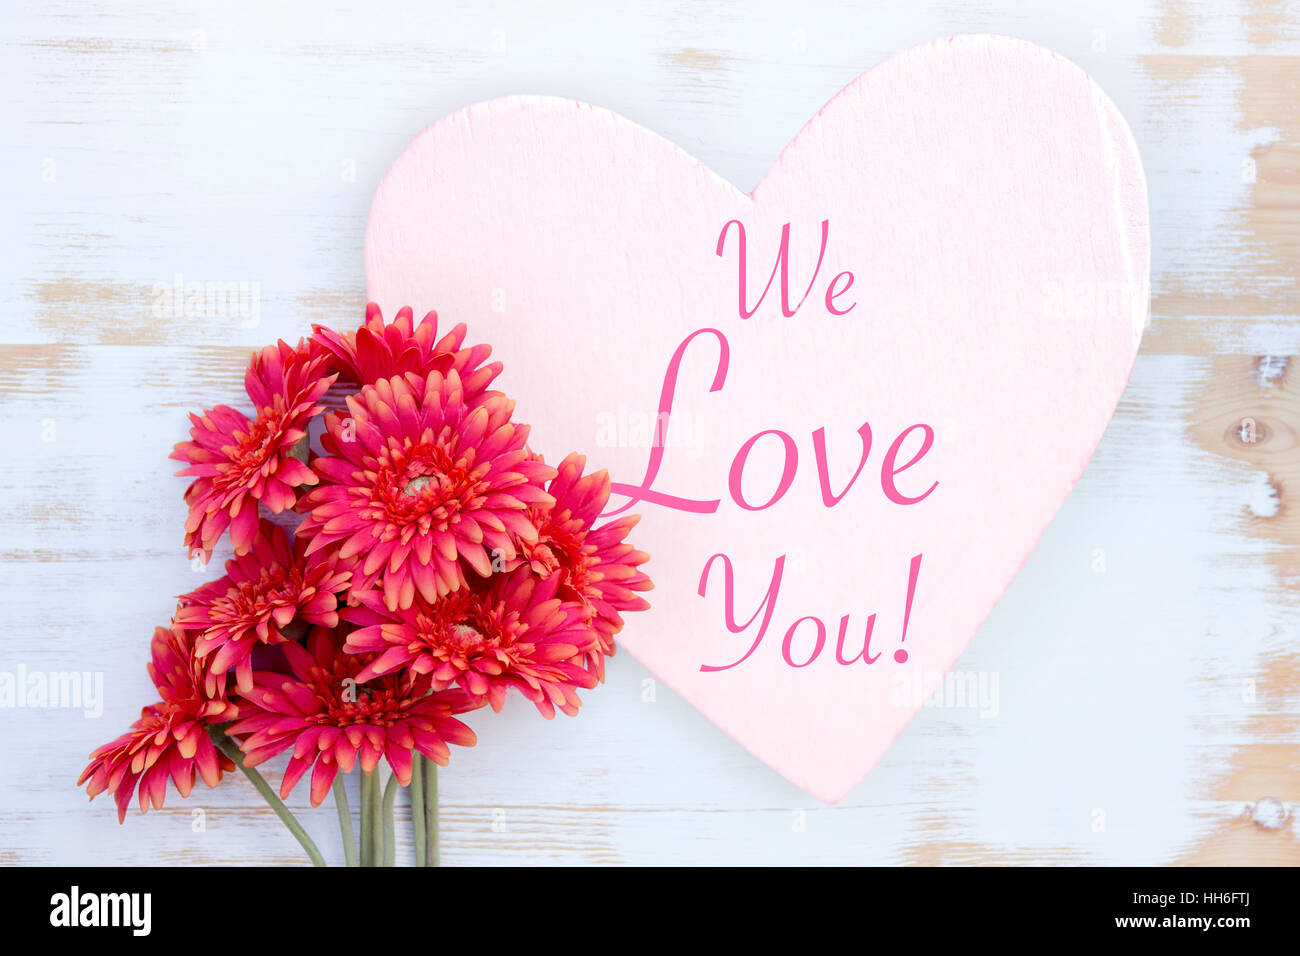 Beautiful Red Flowers And Wooden Heart With Words We Love You Stock